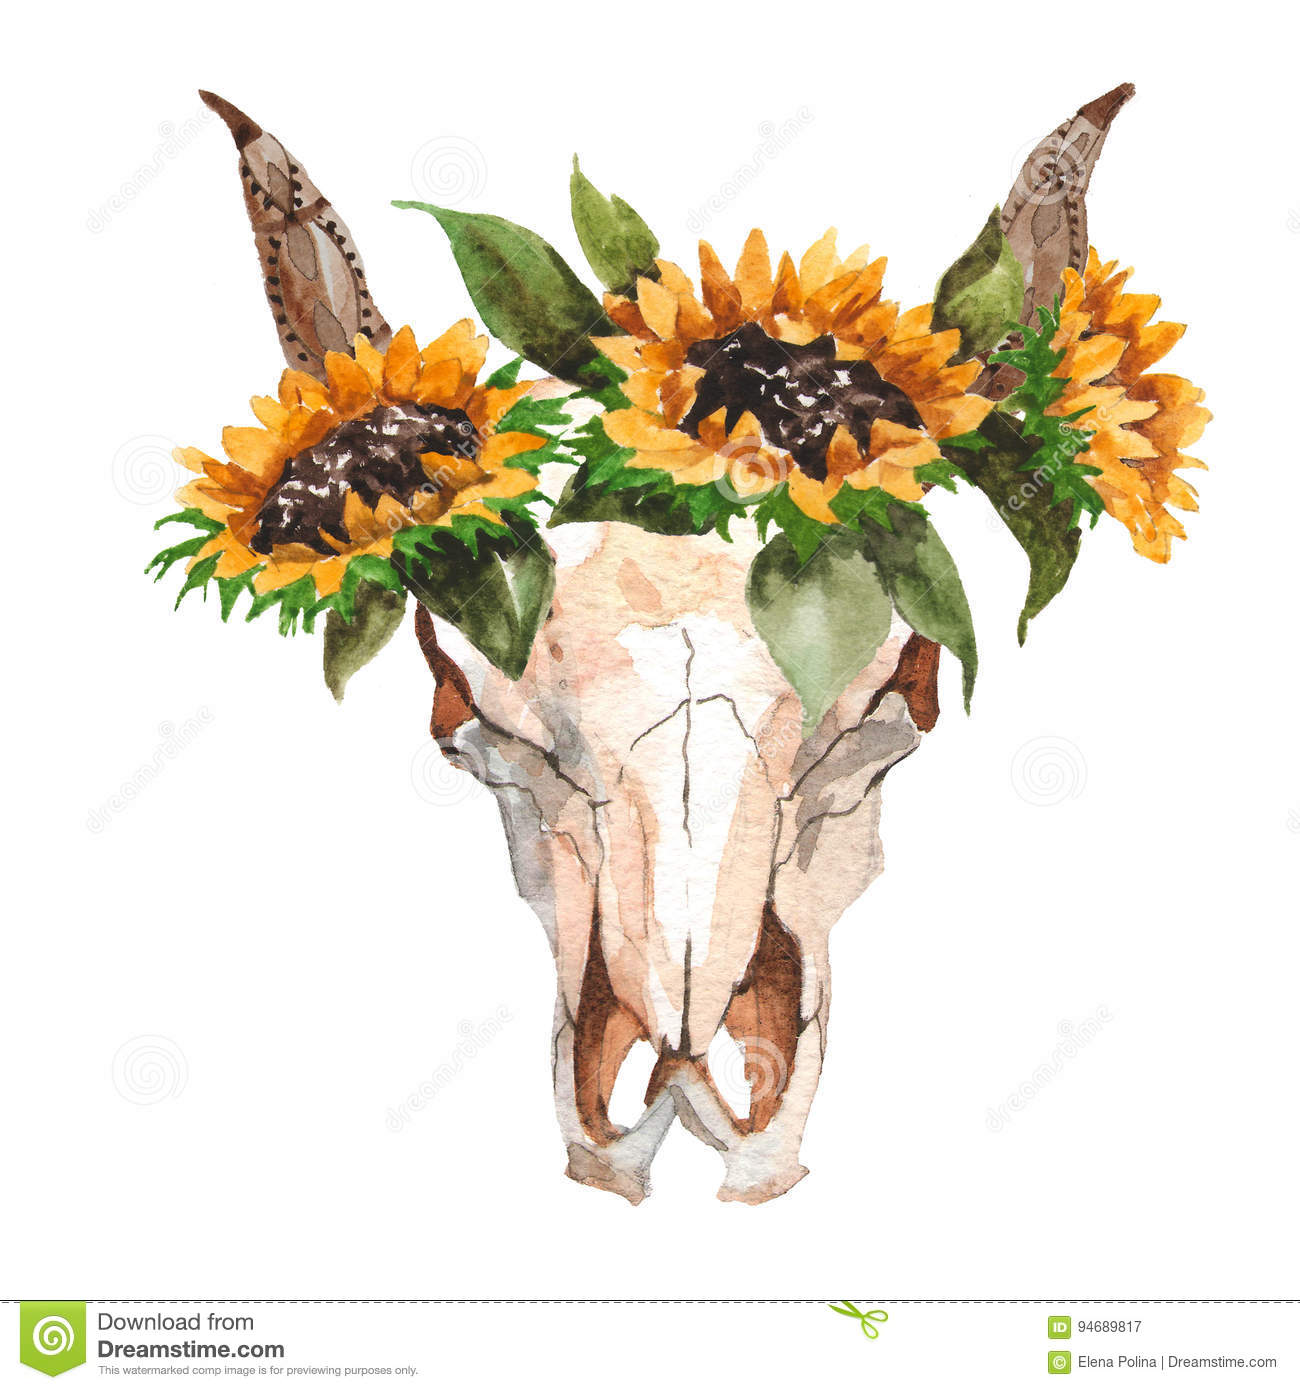 Download Watercolor Isolated Bulls Head With Flowers And Feathers On White Background Boho